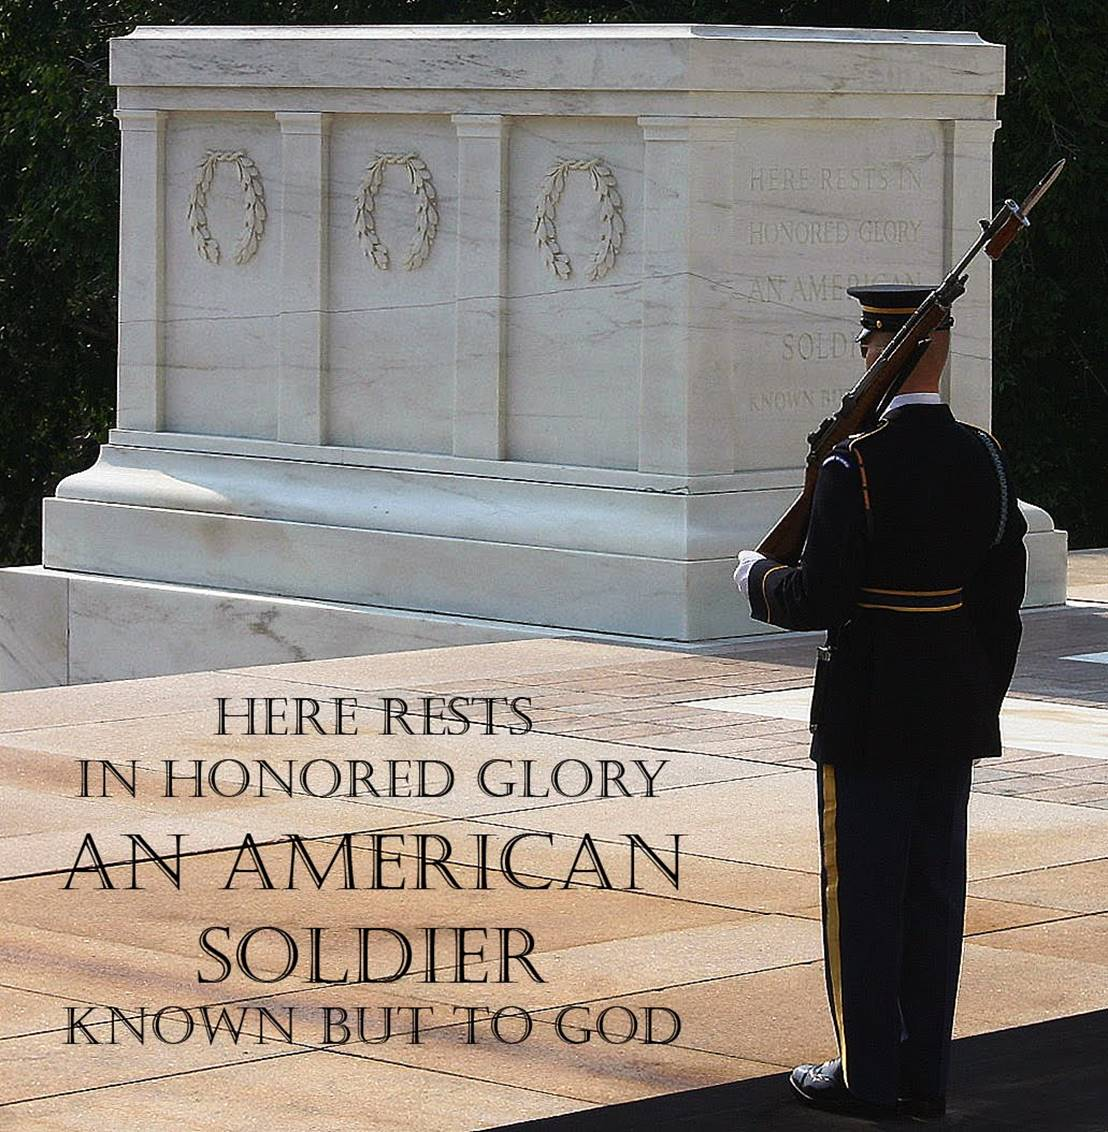 Monday, May 25, 2020. Memorial Day. The Unknown Soldier of America Pays Tribute to the Unmourned Soldiers of Special Frontier Force.